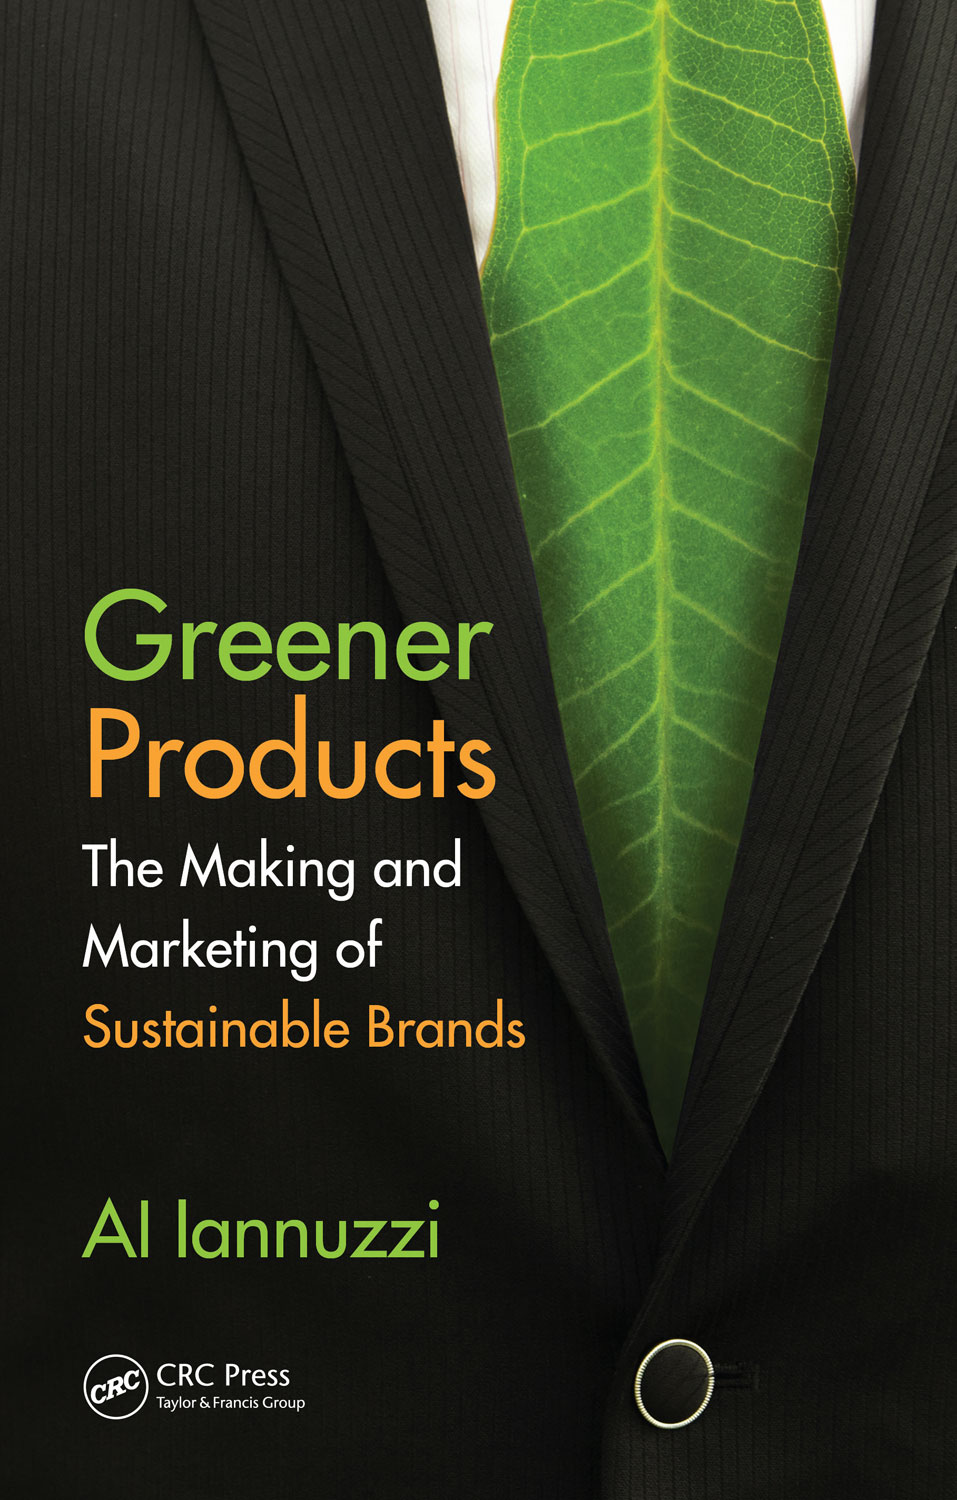 sustainability and green product The hidden impacts of our purchases occur throughout a product's supply chain: from resource harvesting and manufacturing to disposal.